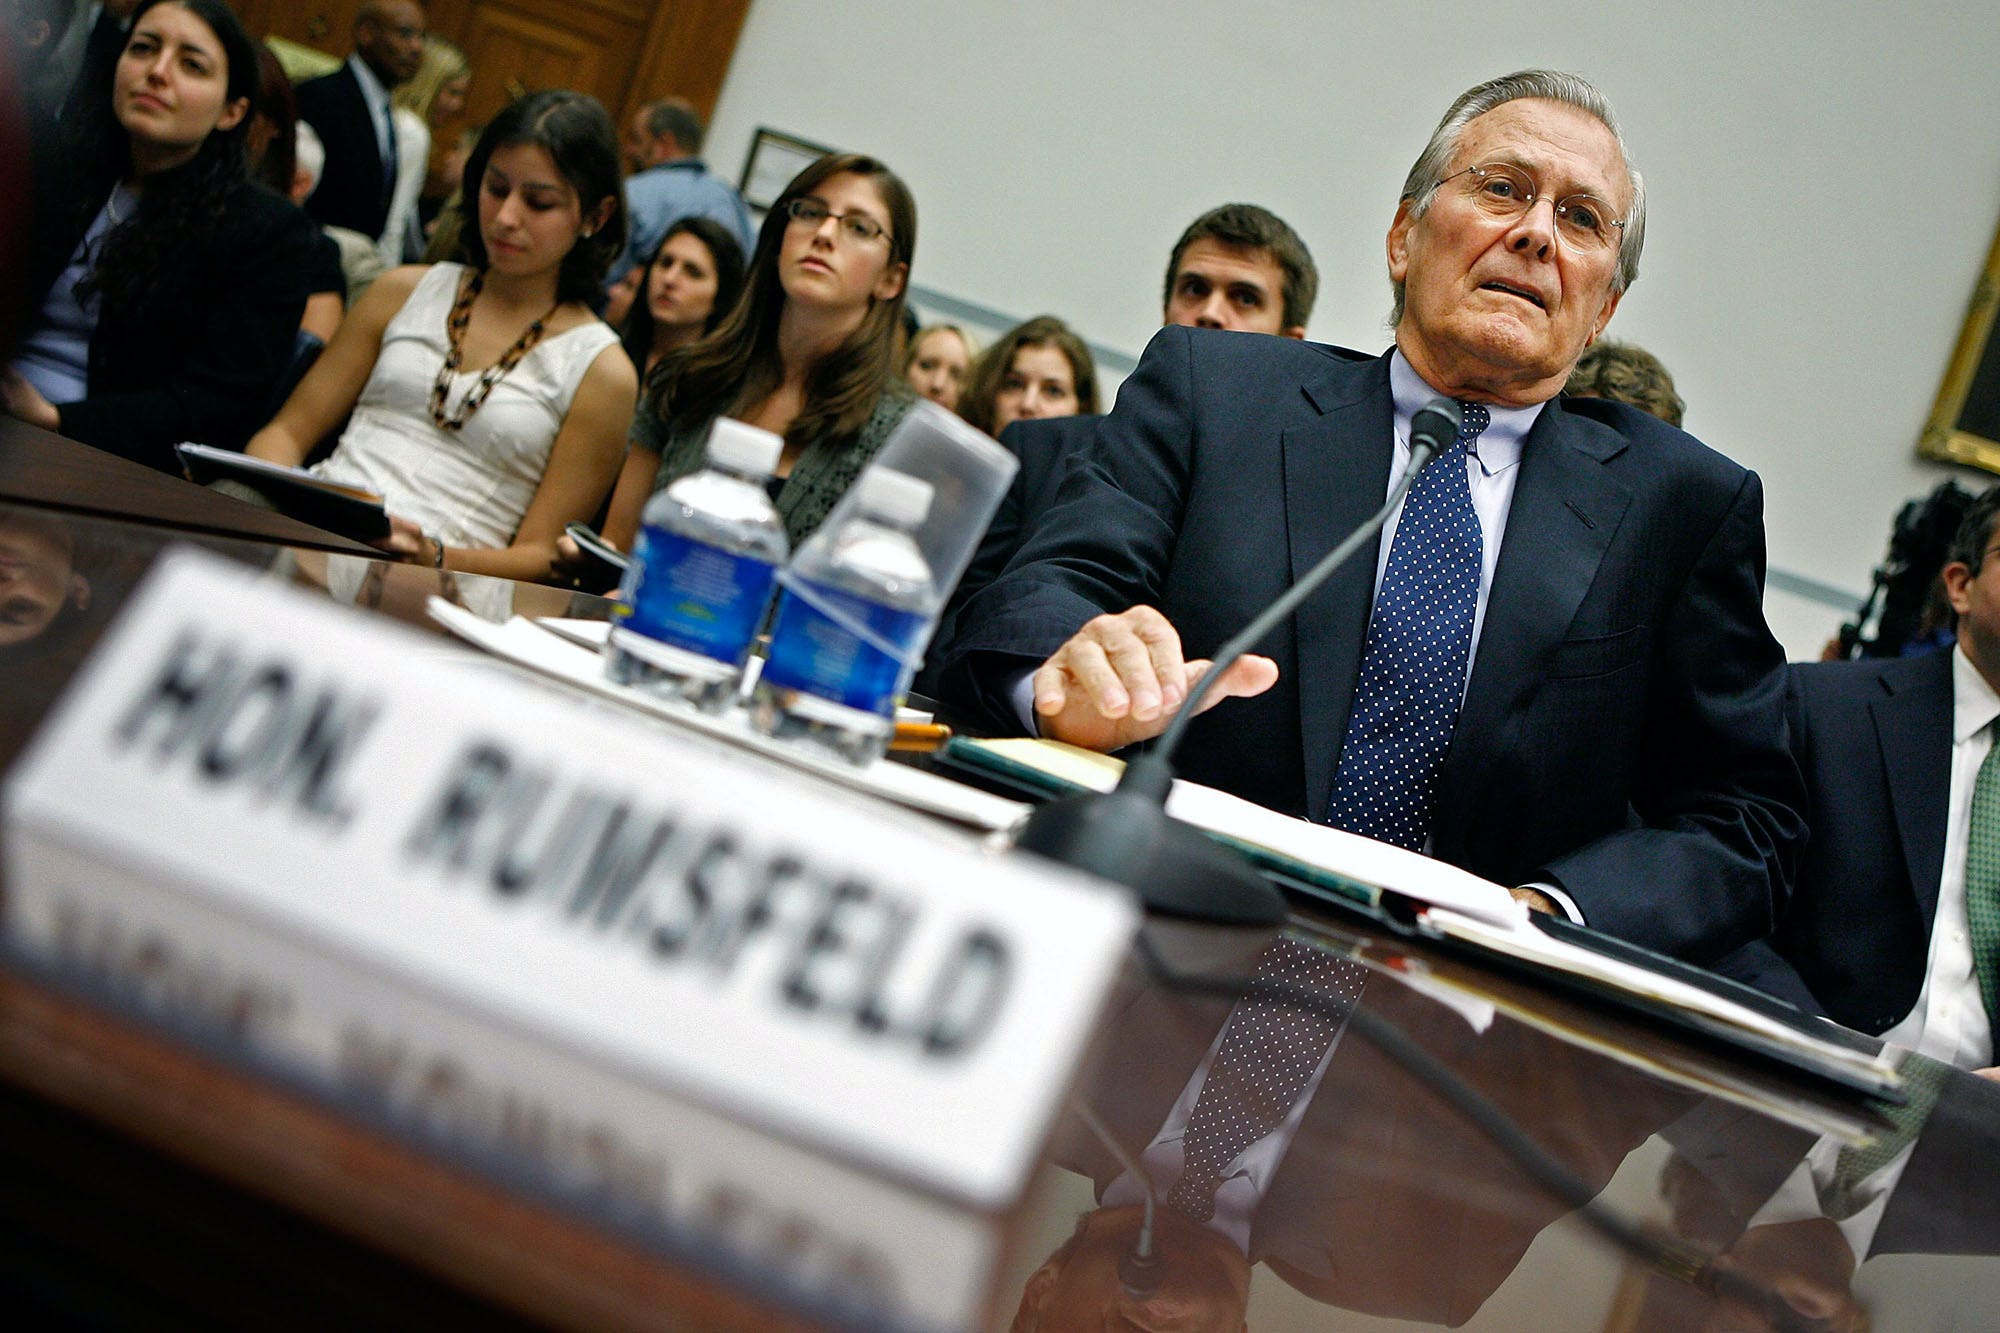 """WASHINGTON - AUGUST 01:  Former Secretary of Defense Donald Rumsfeld testifies before the House Oversight and Government Reform Committee about the combat fratricide of NFL star and US Army Ranger Pat Tillman on Capitol Hill August 1, 2007 in Washington, DC. The hearing was titled """"The Tillman Fratricide: What the Leadership of the Defense Department Knew."""" Tillman's family was originally told that he was killed by the enemy during combat in Afghanistan. It was later revealed that he was killed in a """"friendly-fire"""" accident by his fellow Rangers.  (Photo by Chip Somodevilla/Getty Images)"""